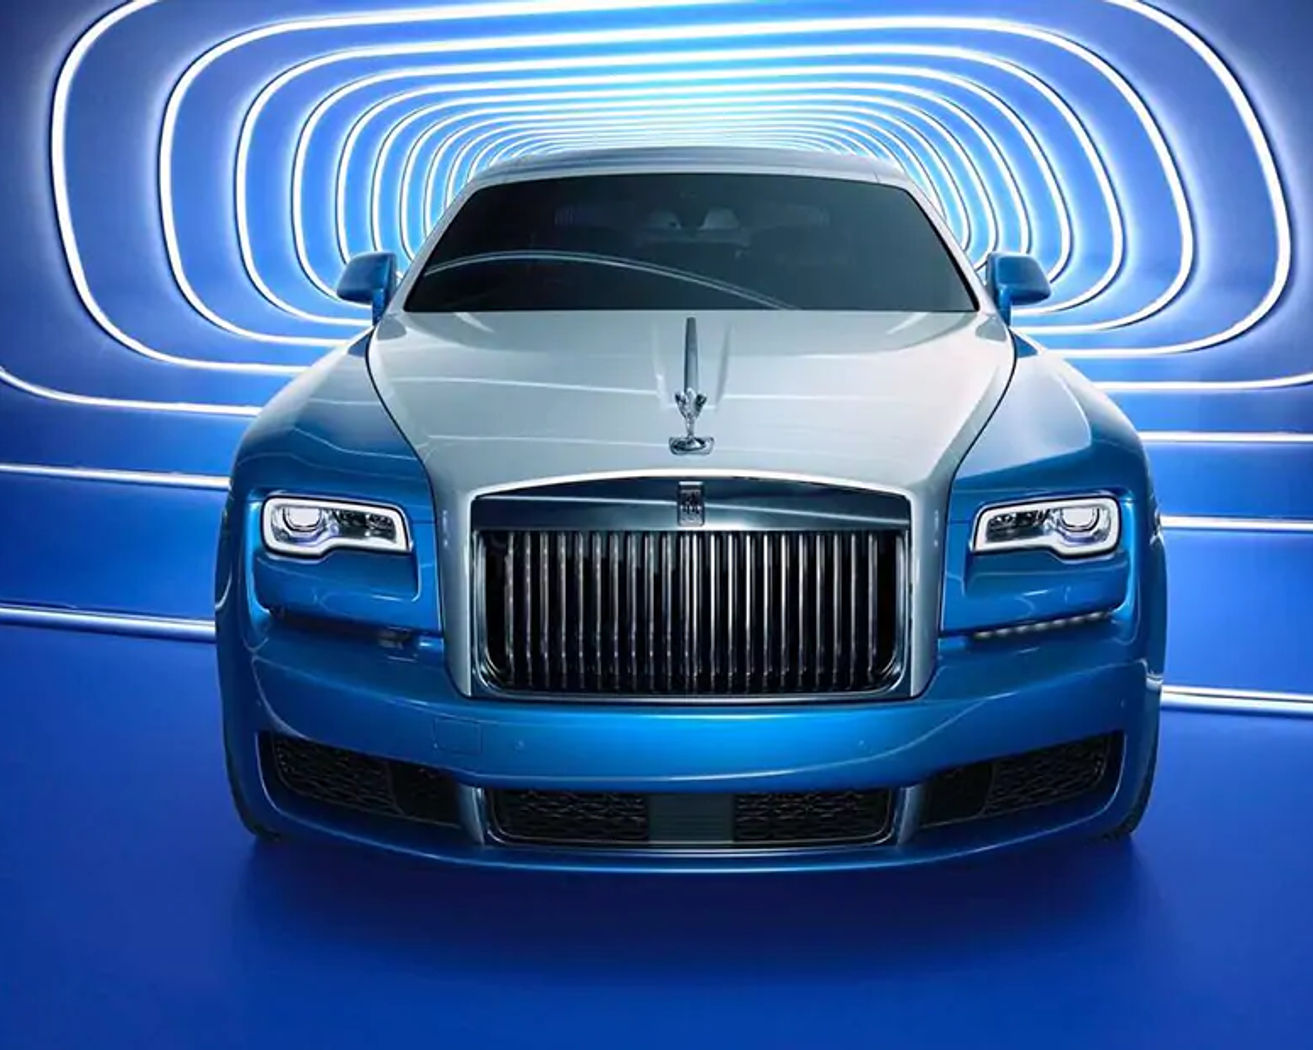 Rolls Royce Ghost Prices In Pune Specs Colors Showrooms Faqs Similar Cars